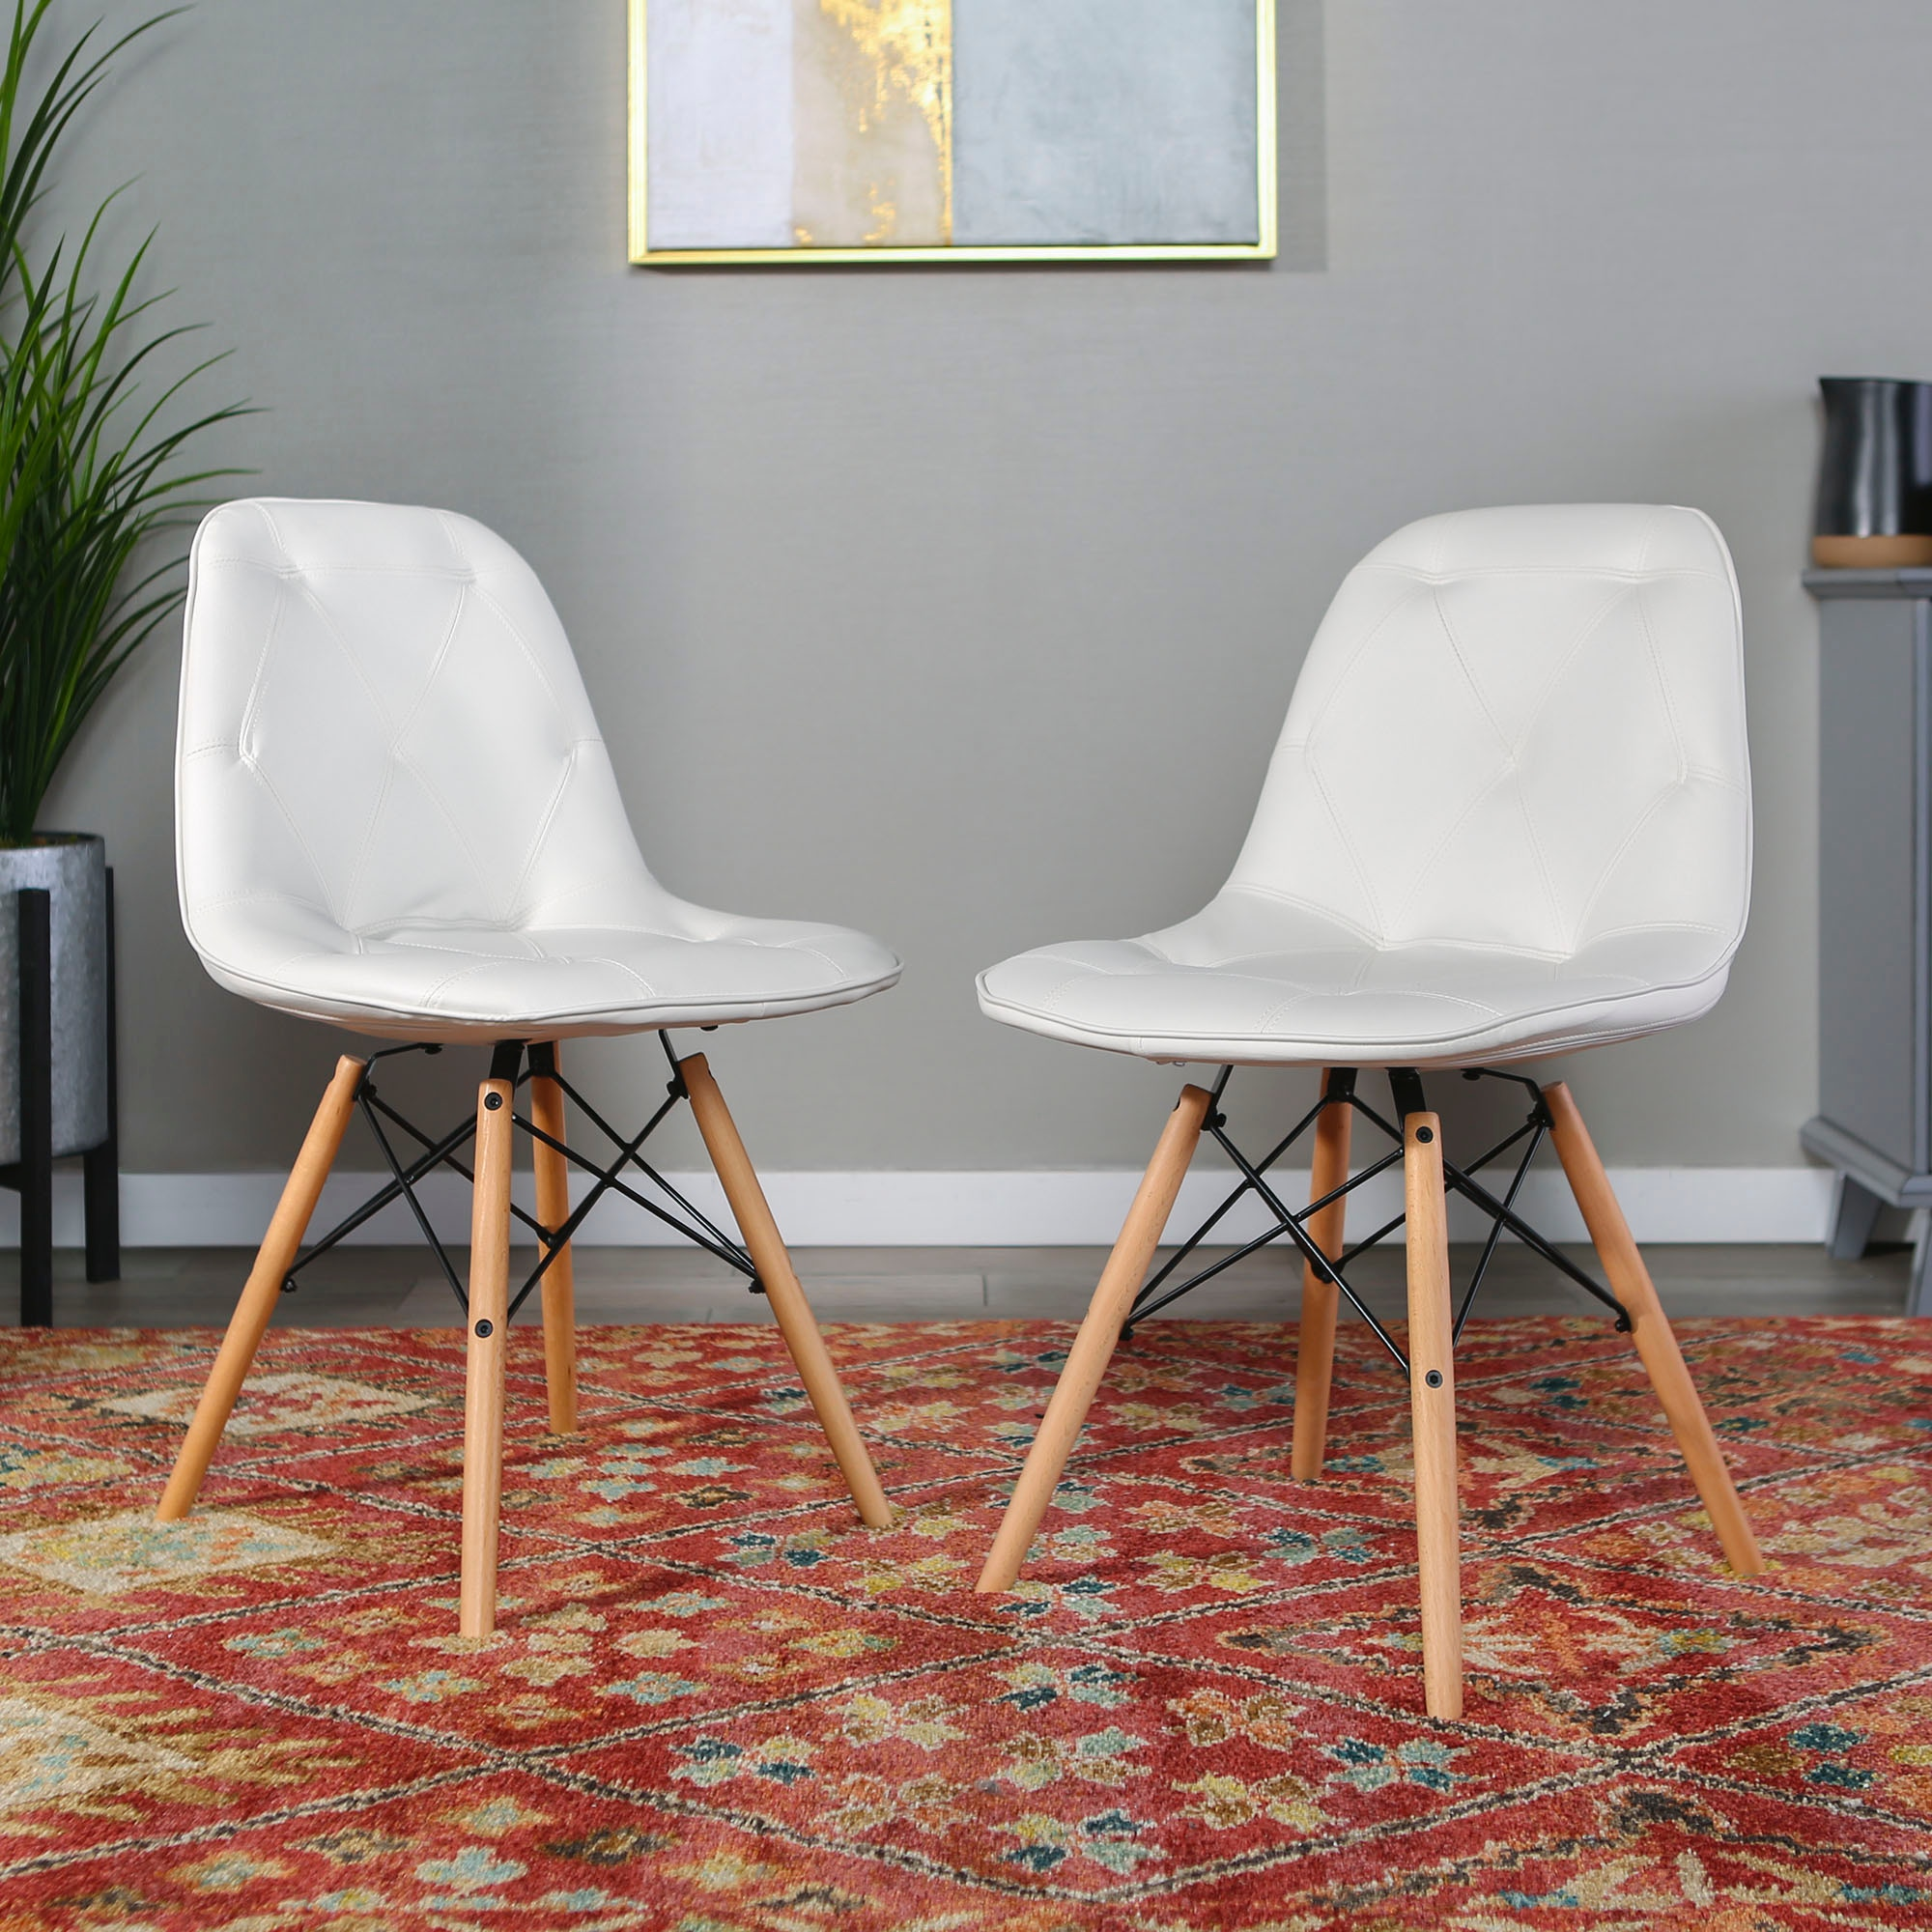 Eames Chair Beige Ft Myers Living Room Mid Century Modern Upholstered Faux Leather Eames Home Office Dining Kitchen Chairs Set Of 2 Wedch18pu2wh Walter E Smithe